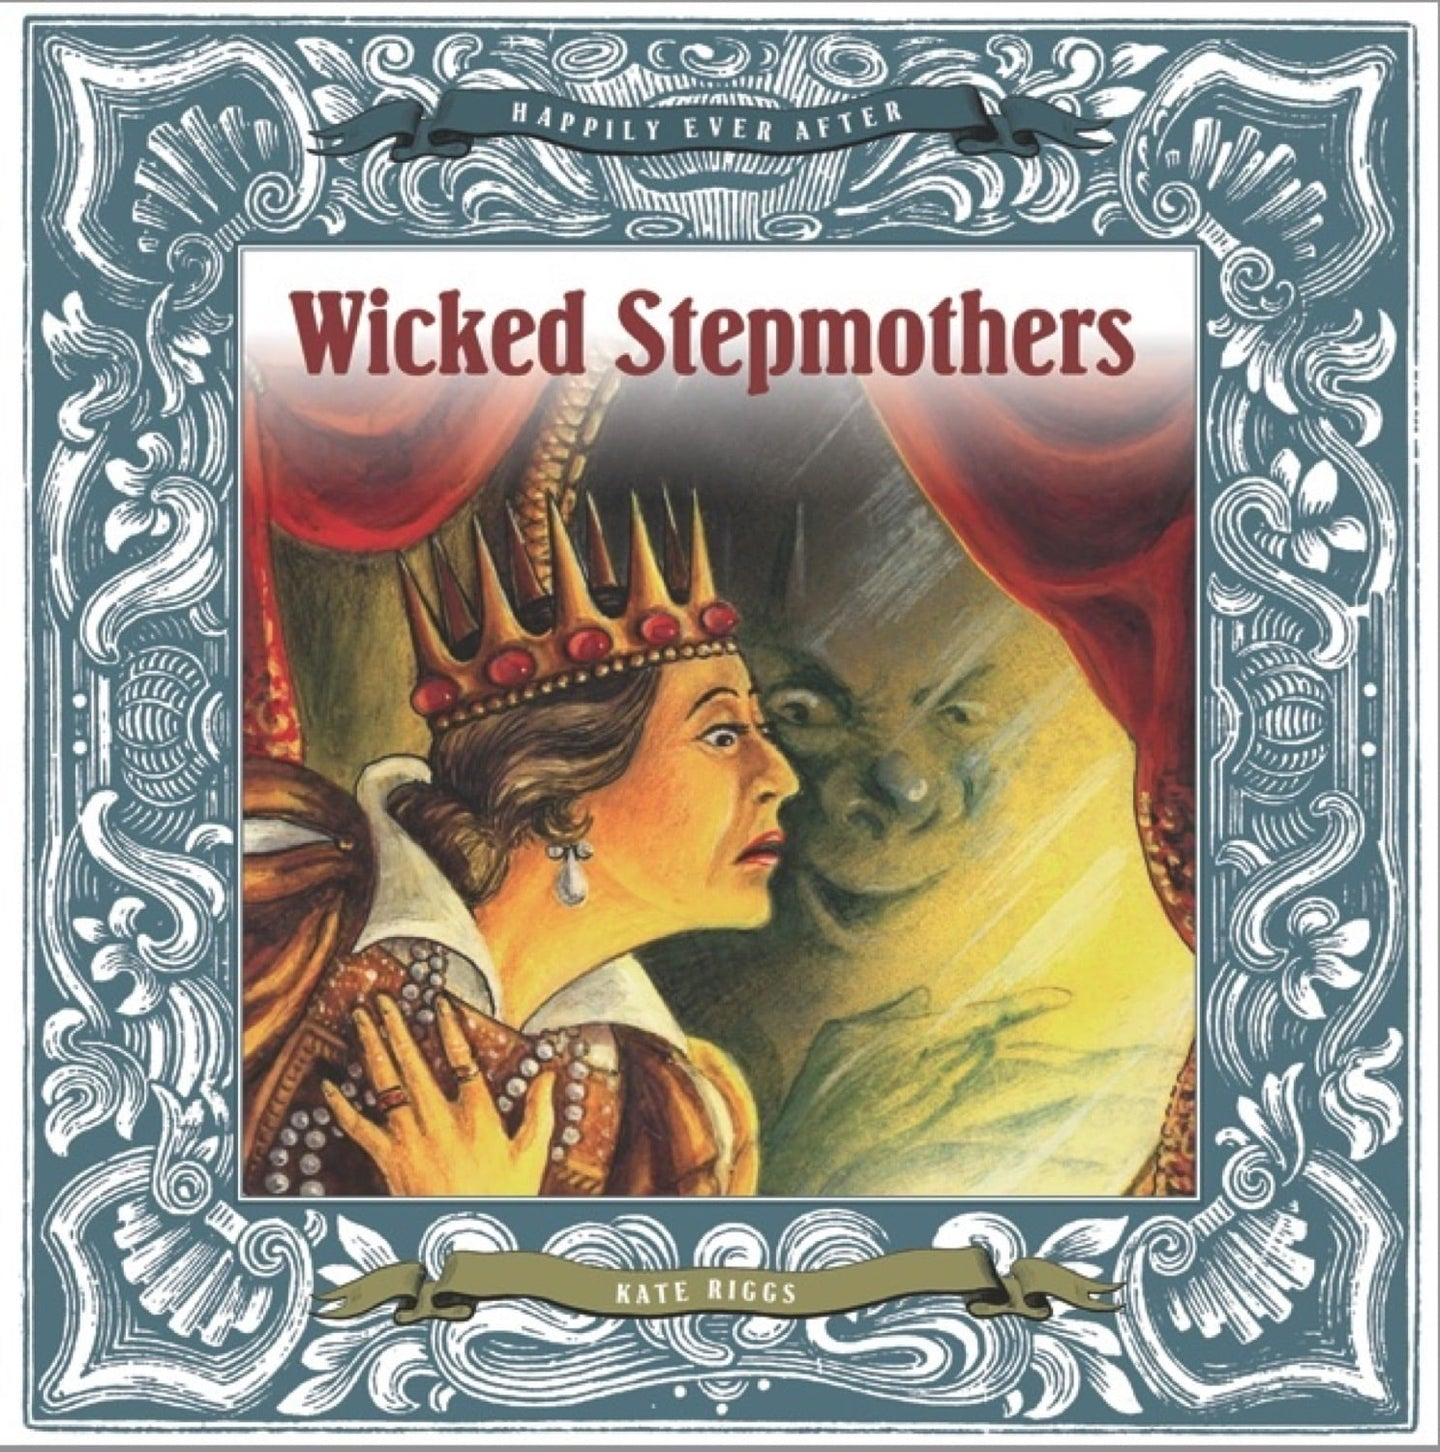 Happily Ever After: Wicked Stepmothers